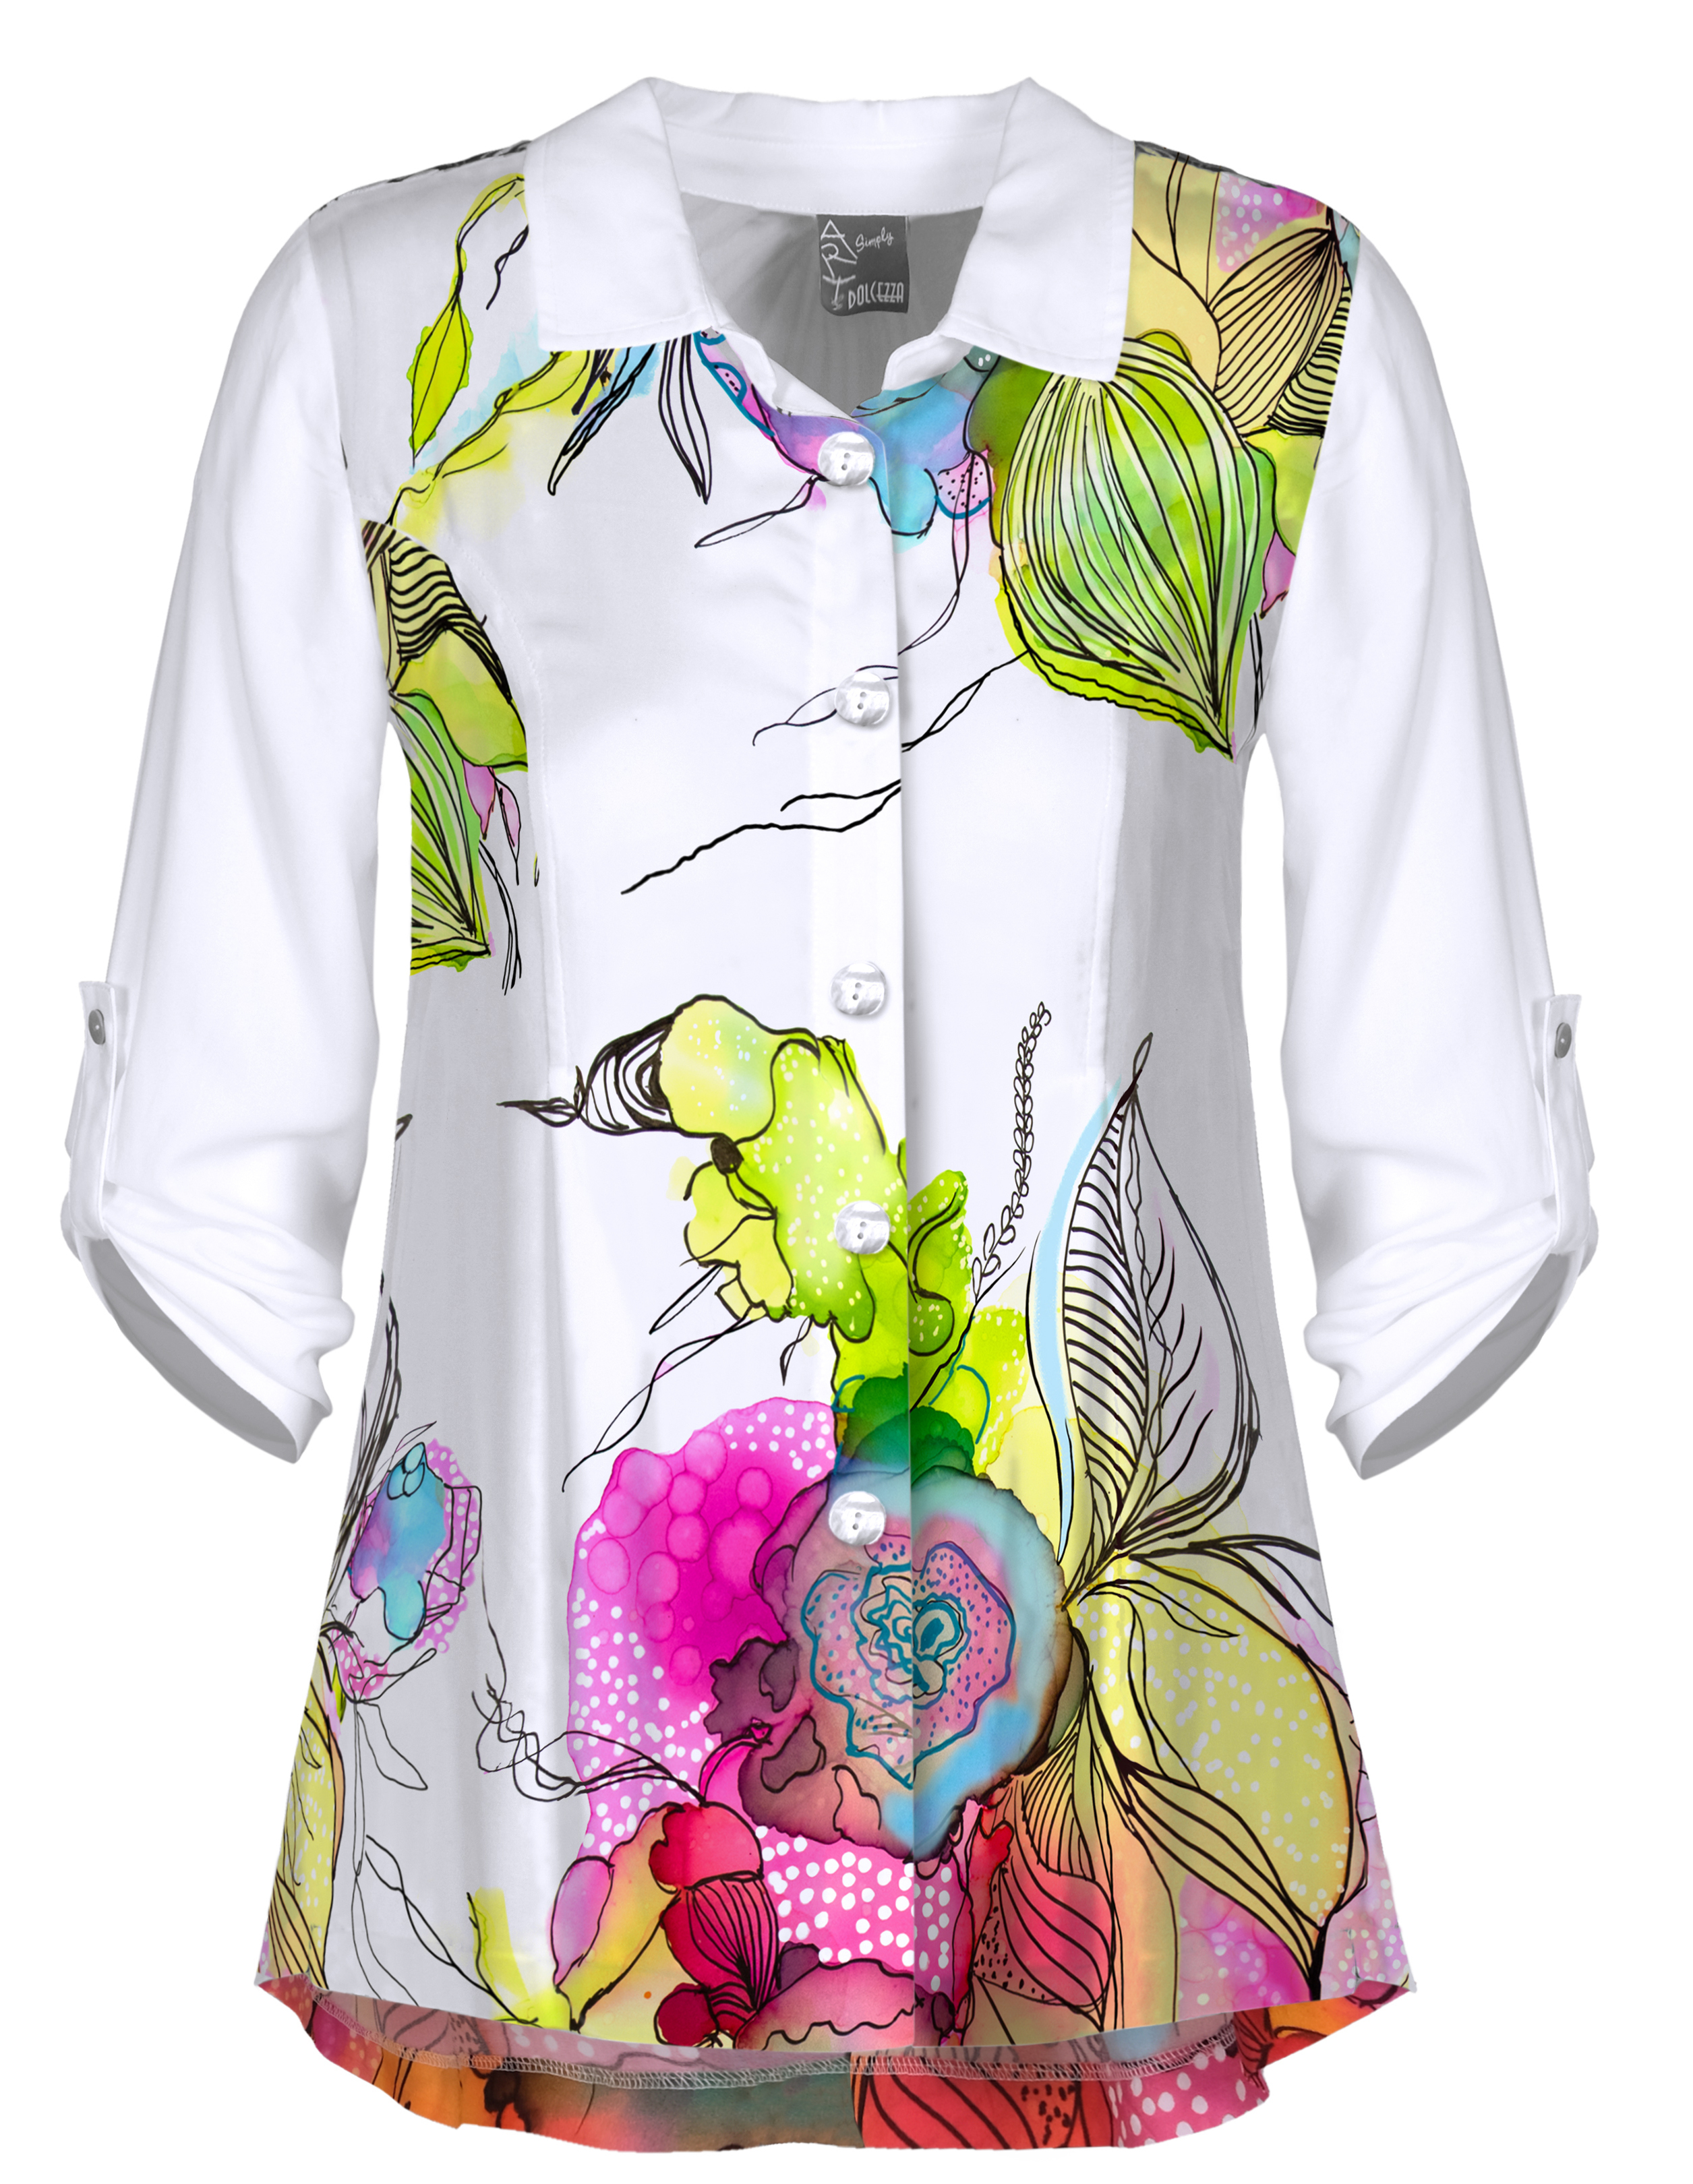 Simply Art Dolcezza: Full Of Vivacity Abstract Art Buttoned High Low Blouse (1 Left!) Dolcezza_simplyart_21722